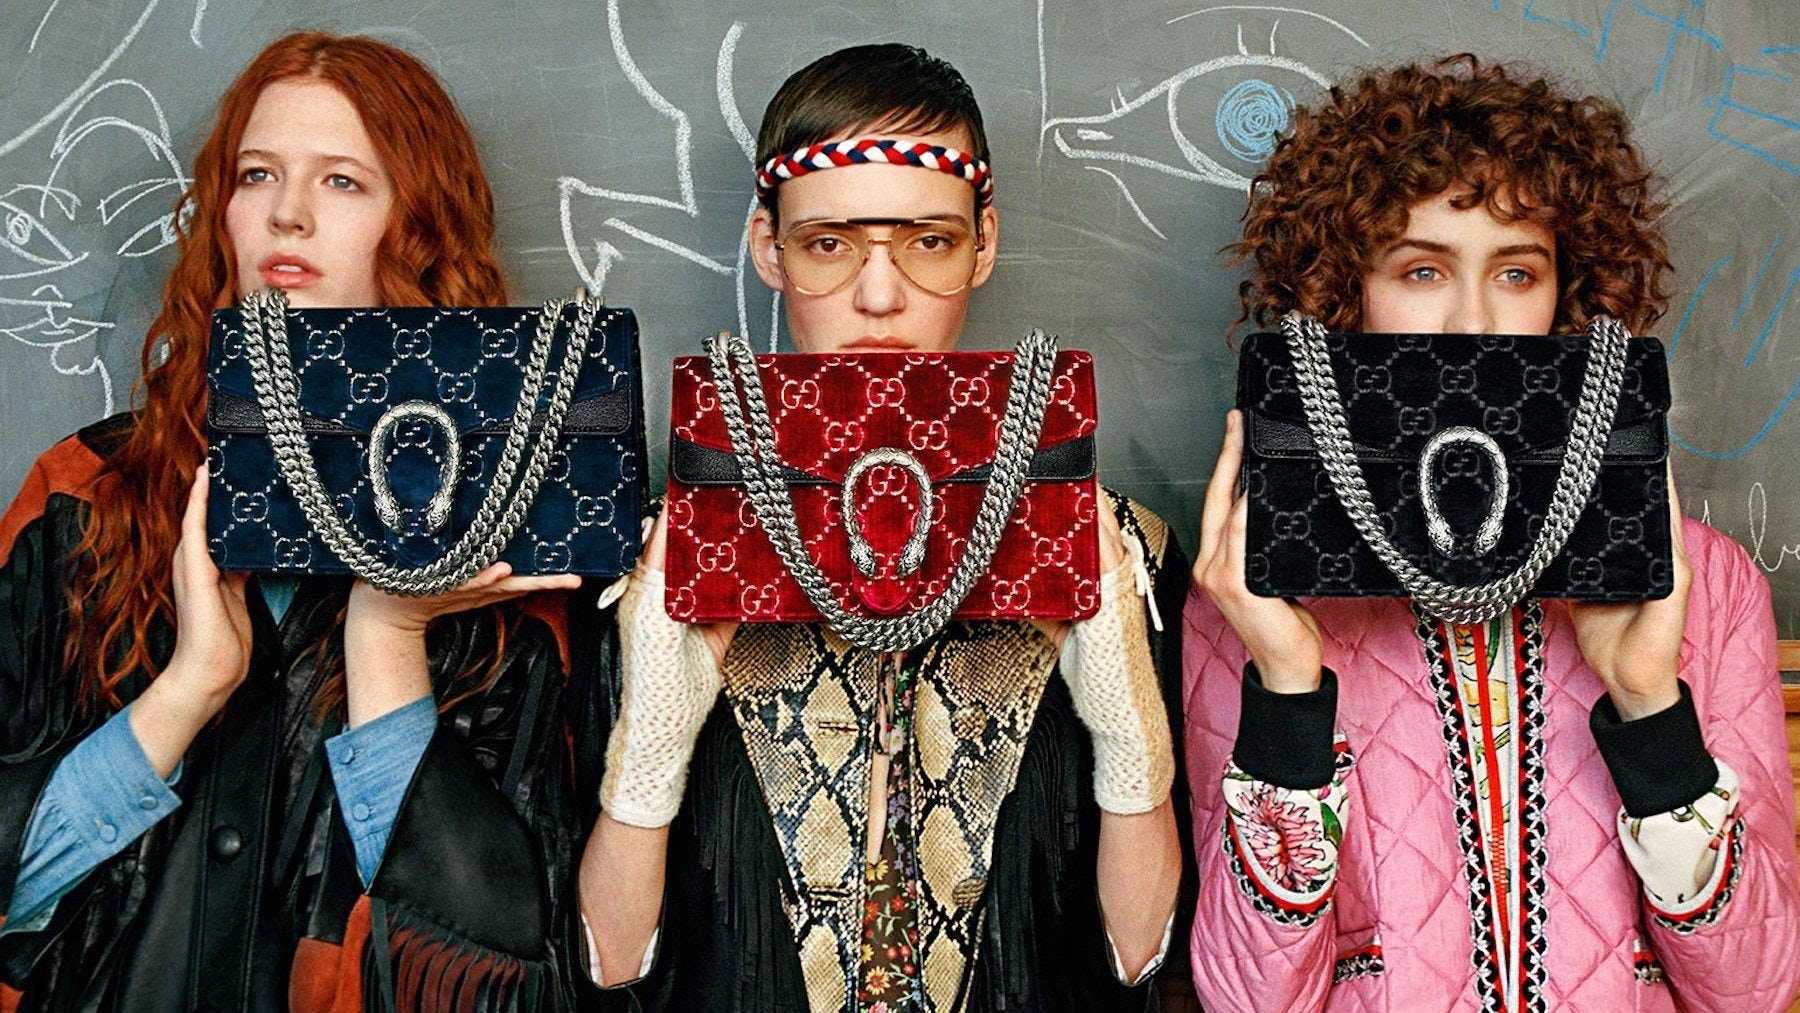 Article cover of Kering's Gucci Joins Peers in Defying China Fears